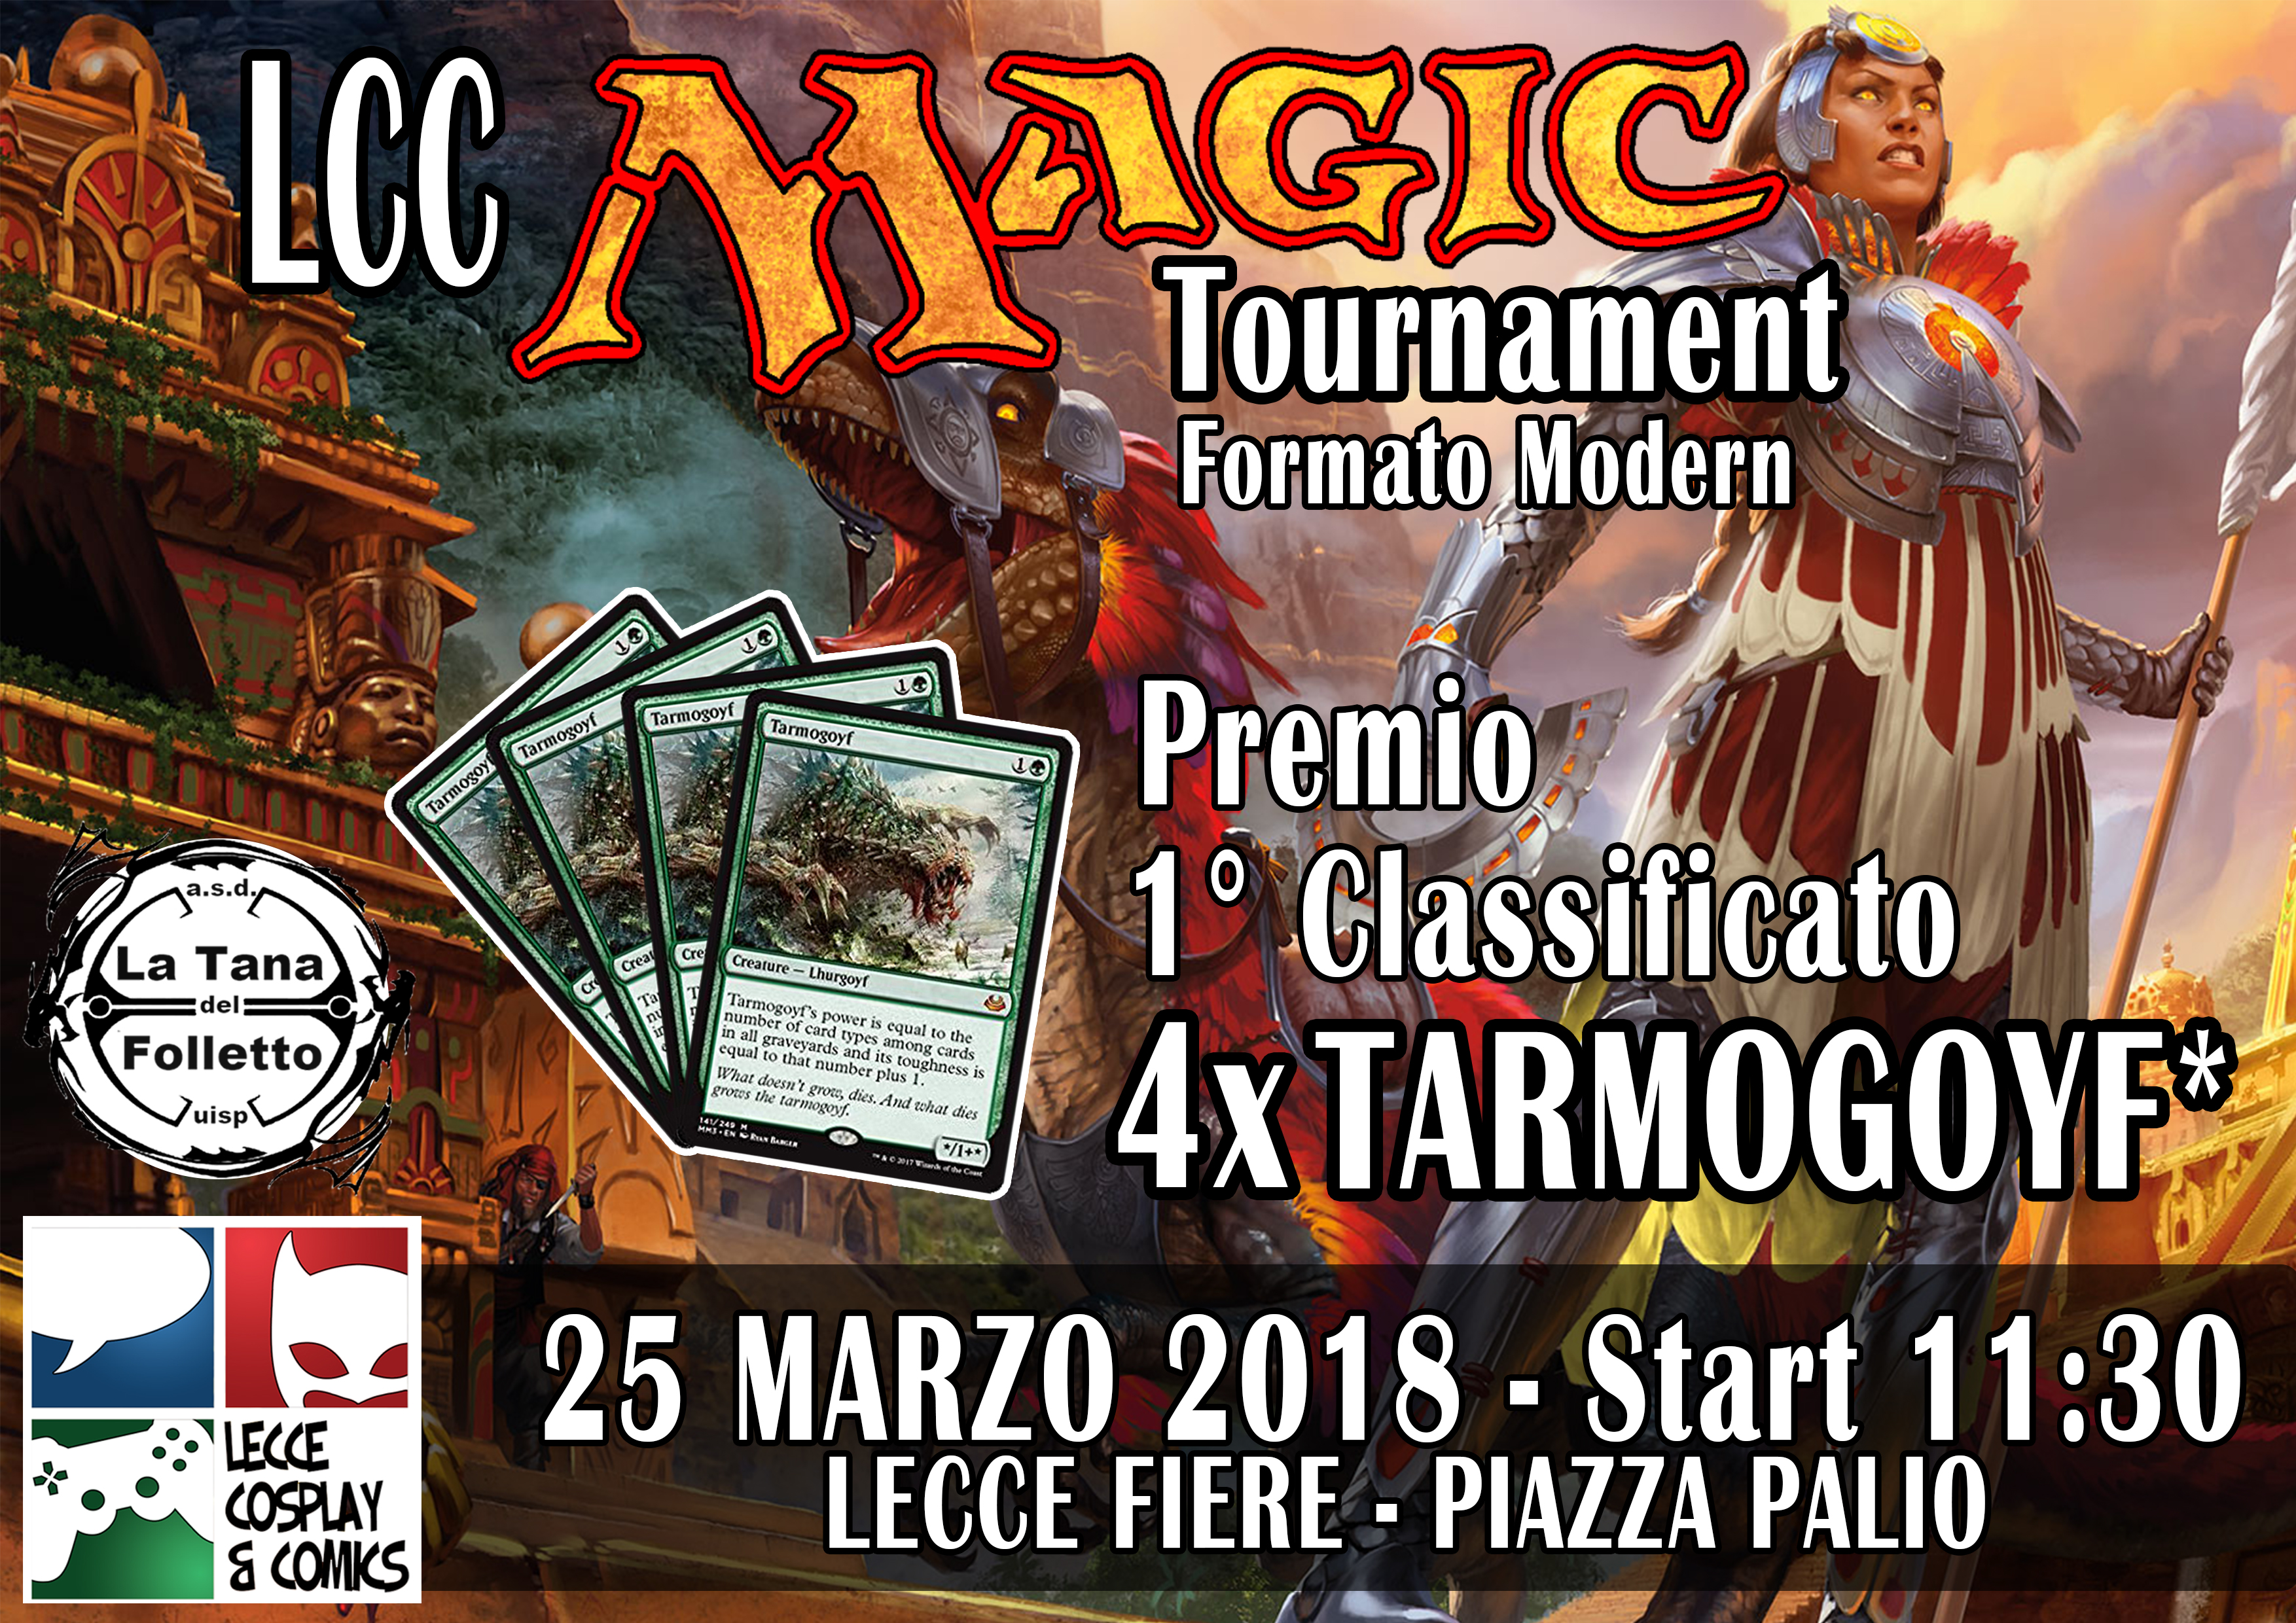 LCC MAGIC TOURNAMENT 2018